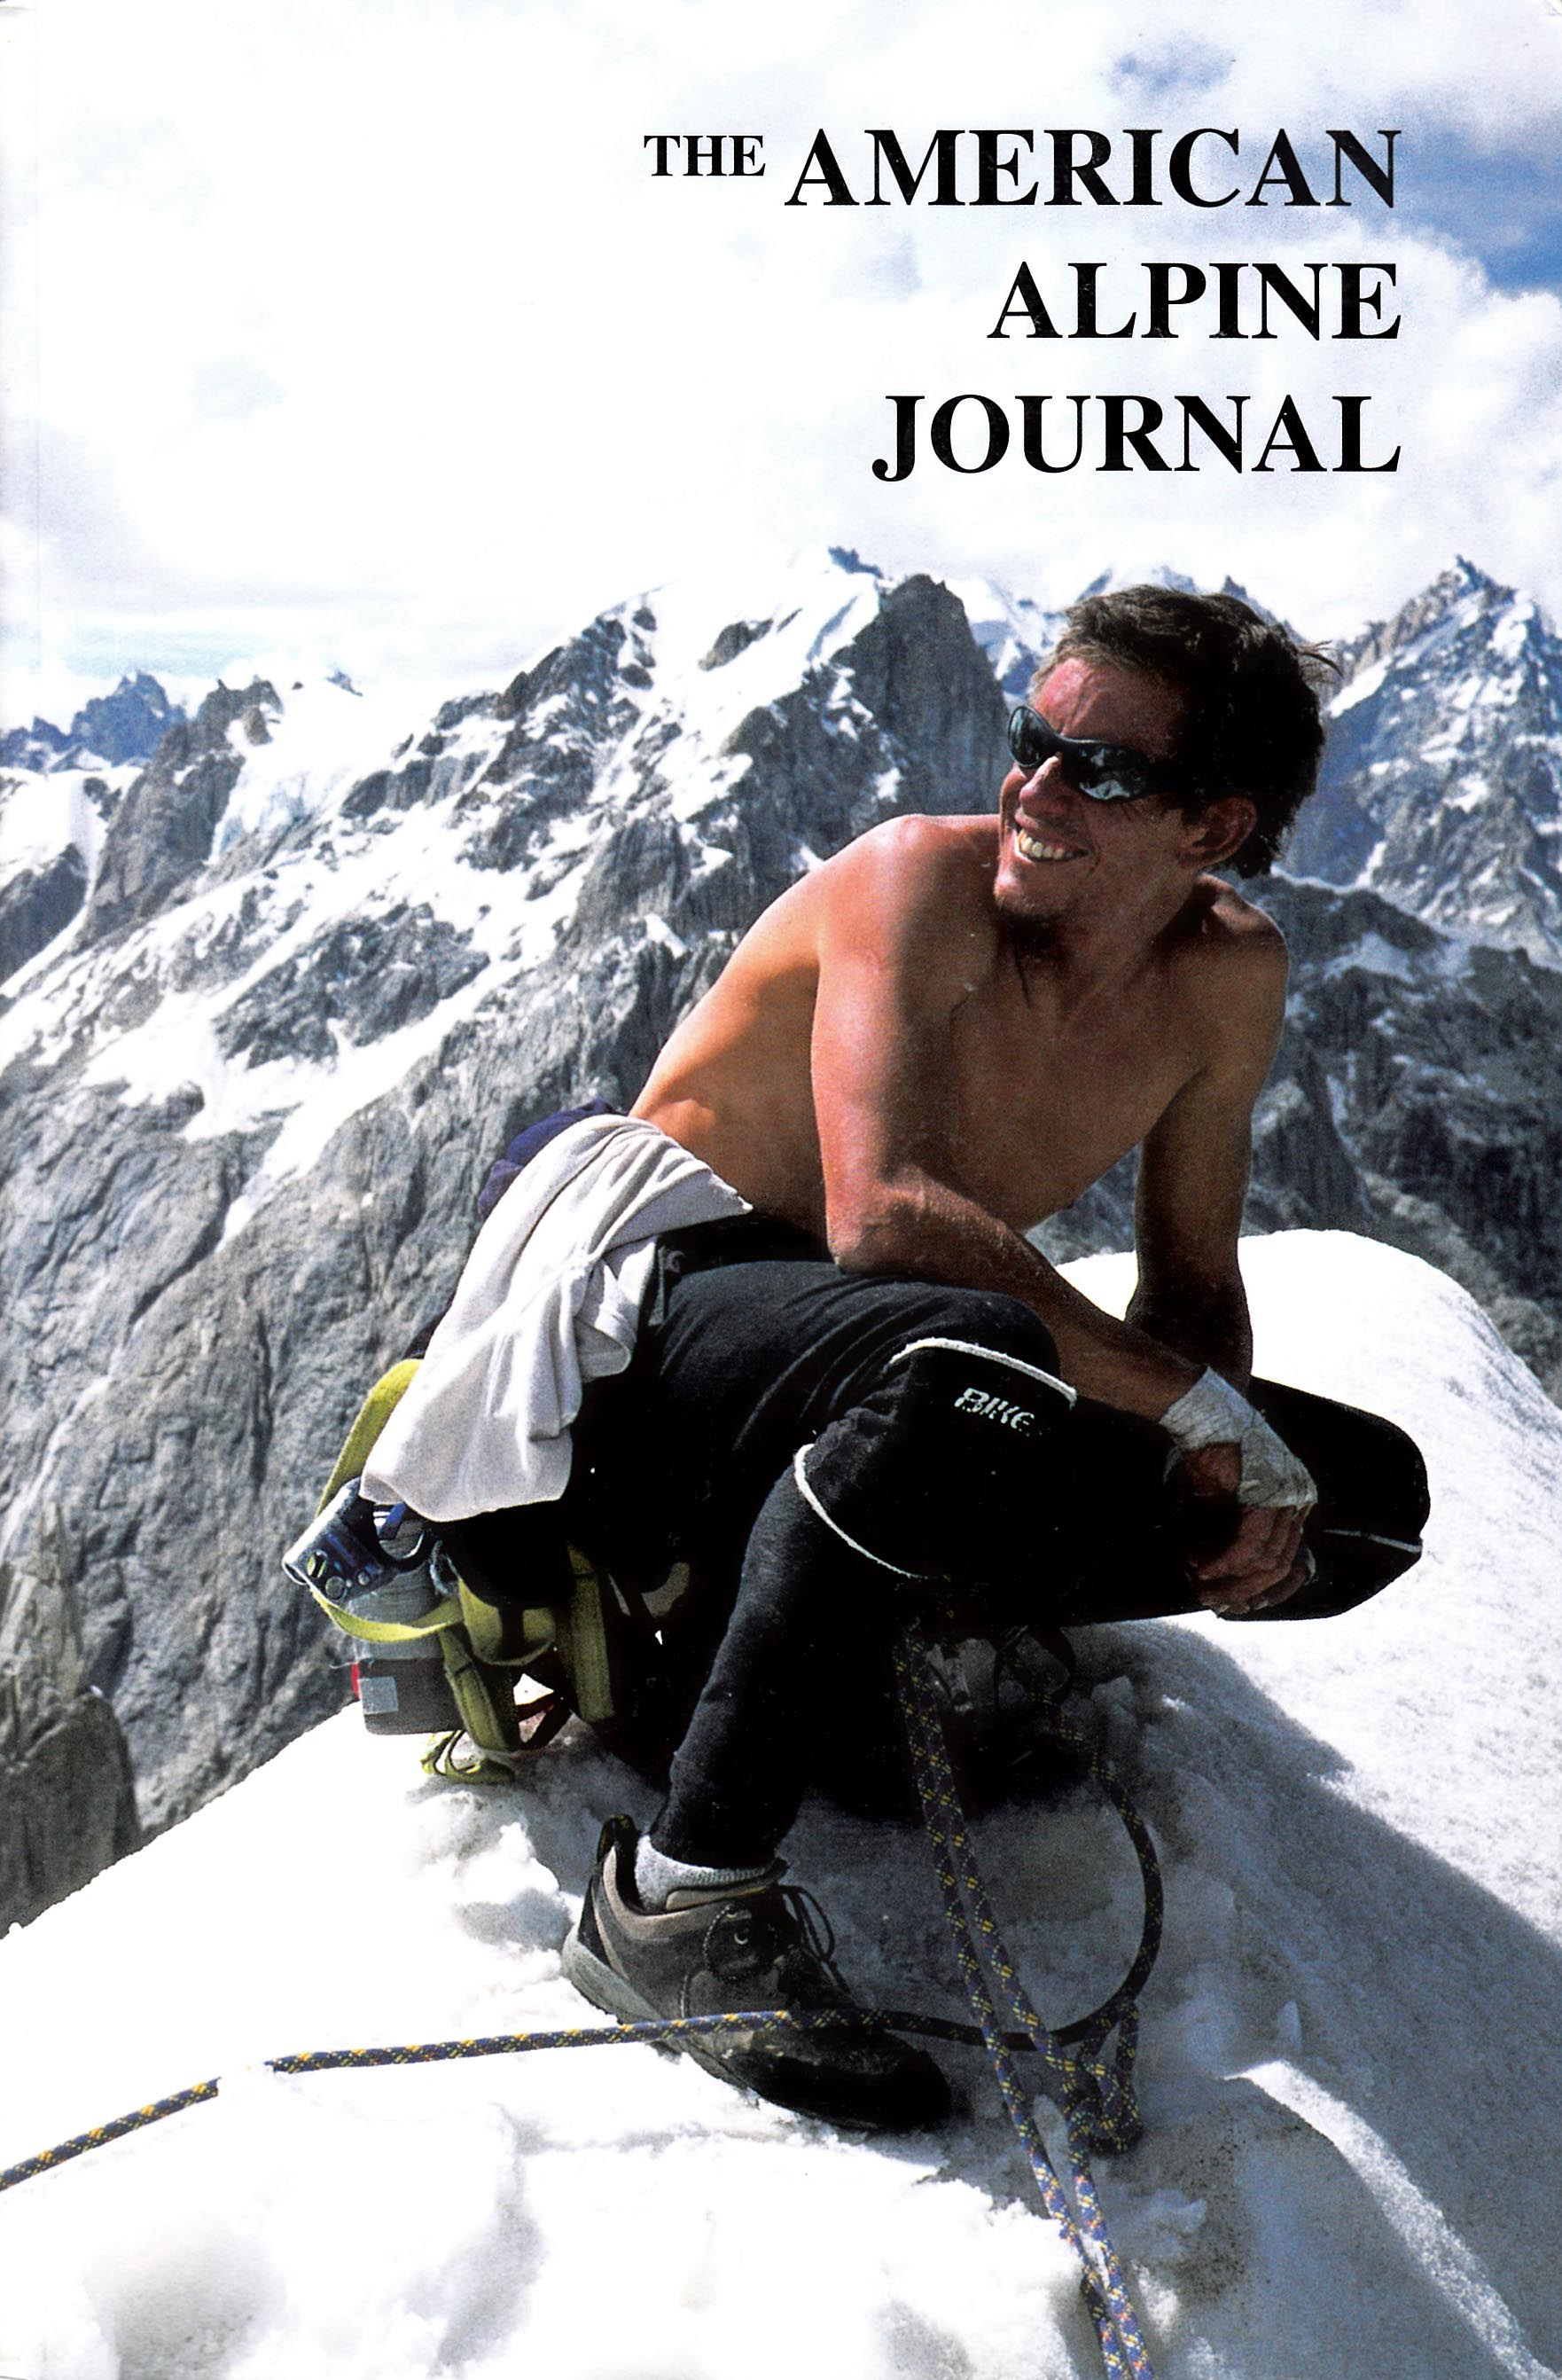 The American Alpine Journal 2001 cover